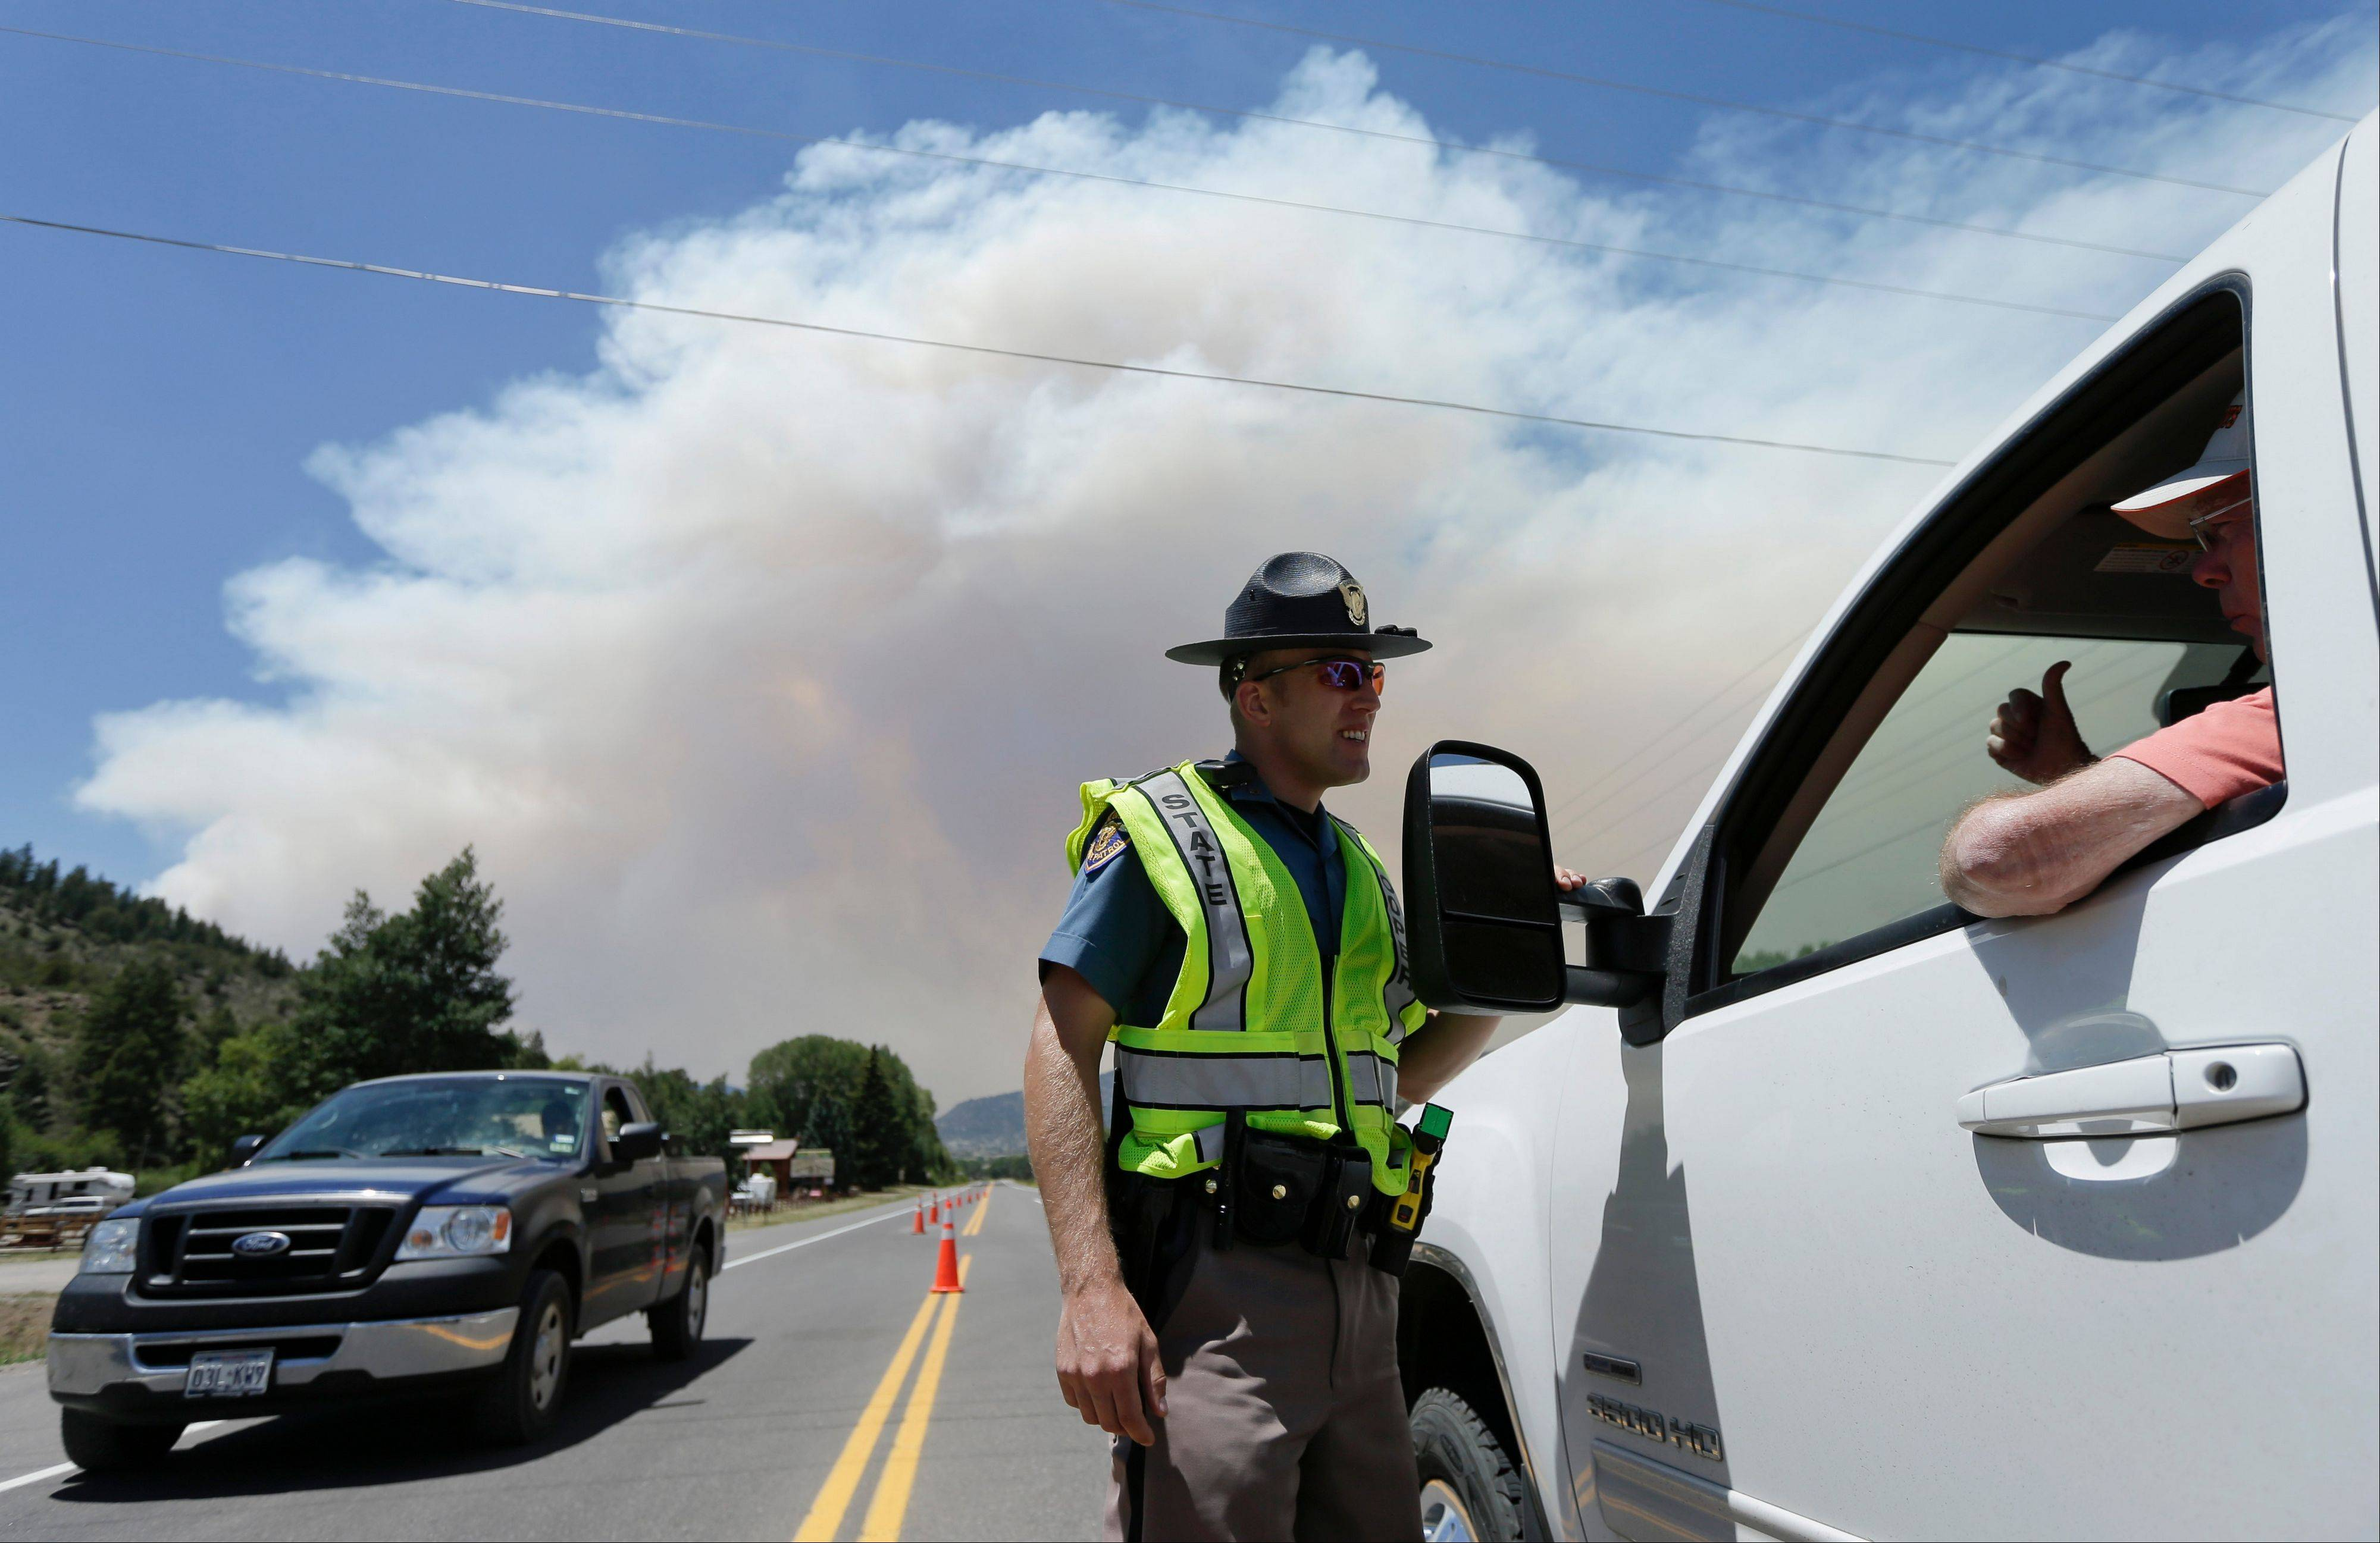 Colorado State Patrol officer Jessie Bartunek talks to a motorist as he stands at a checkpoint near South Fork, Colo., Sunday. A large wildfire near a popular summer retreat in southern Colorado continues to be driven by winds and fueled by dead trees in a drought-stricken area, authorities said Sunday.